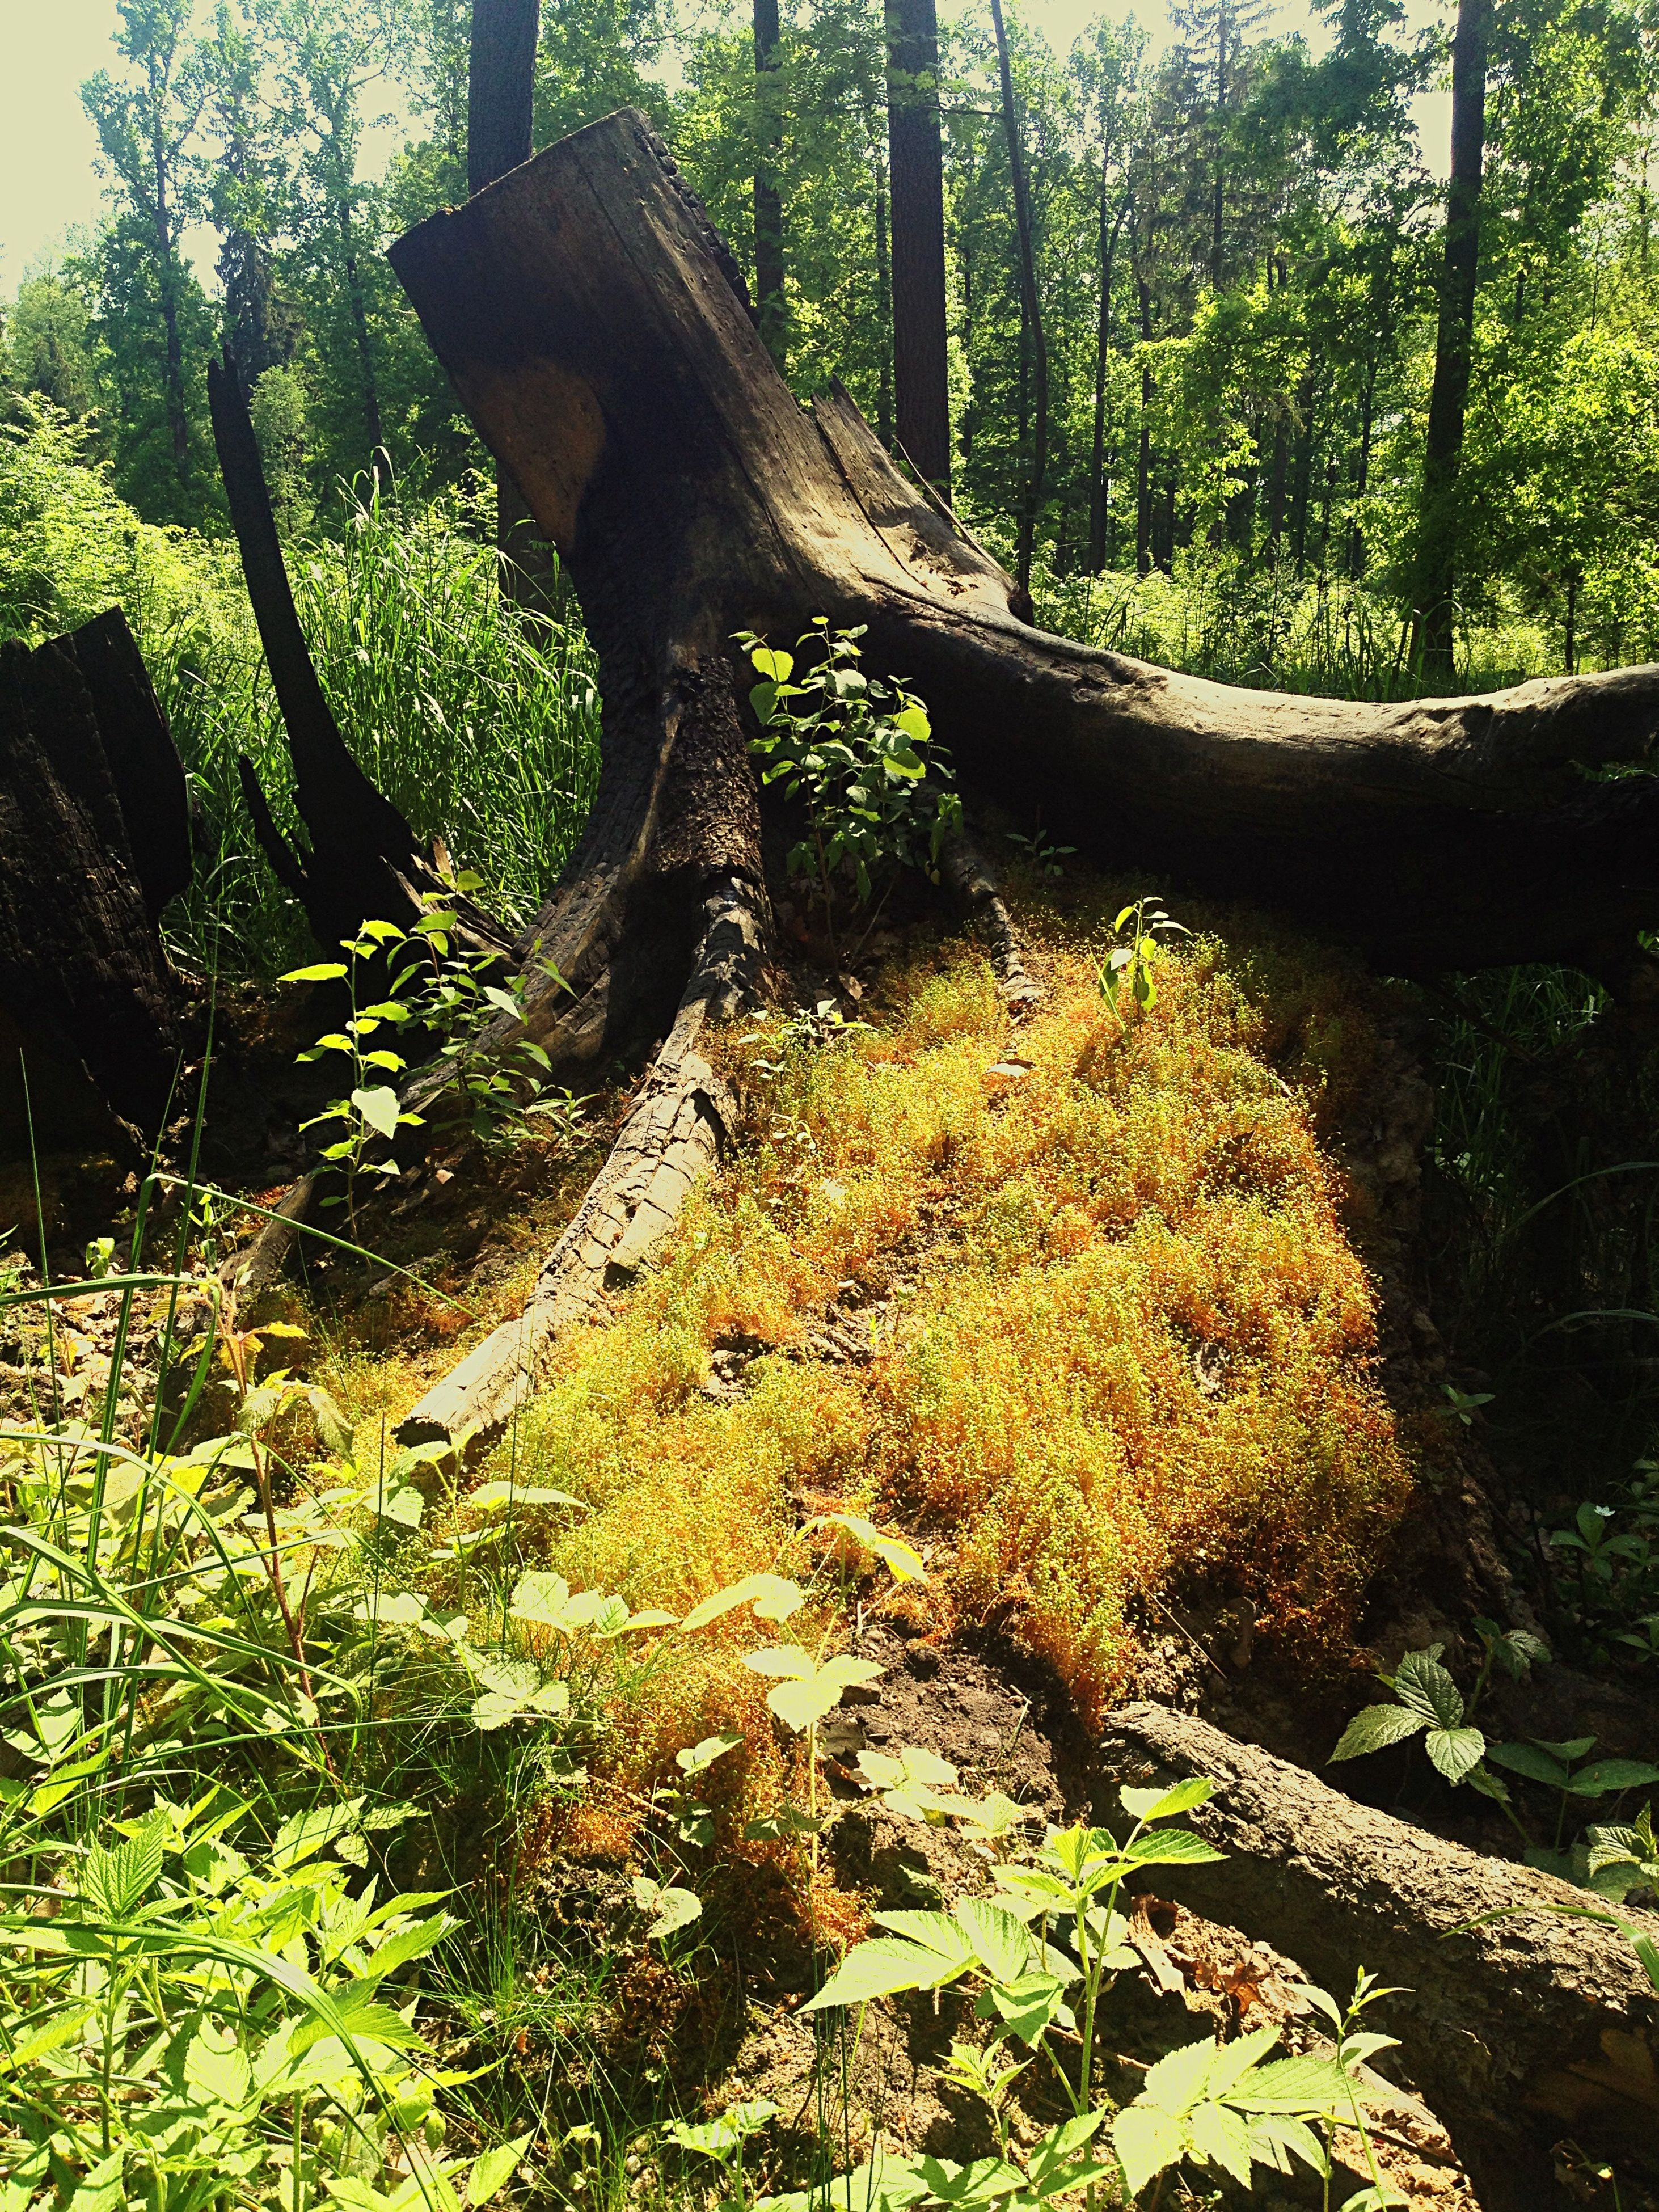 tree, tree trunk, nature, growth, forest, tranquility, day, outdoors, no people, branch, beauty in nature, scenics, dead tree